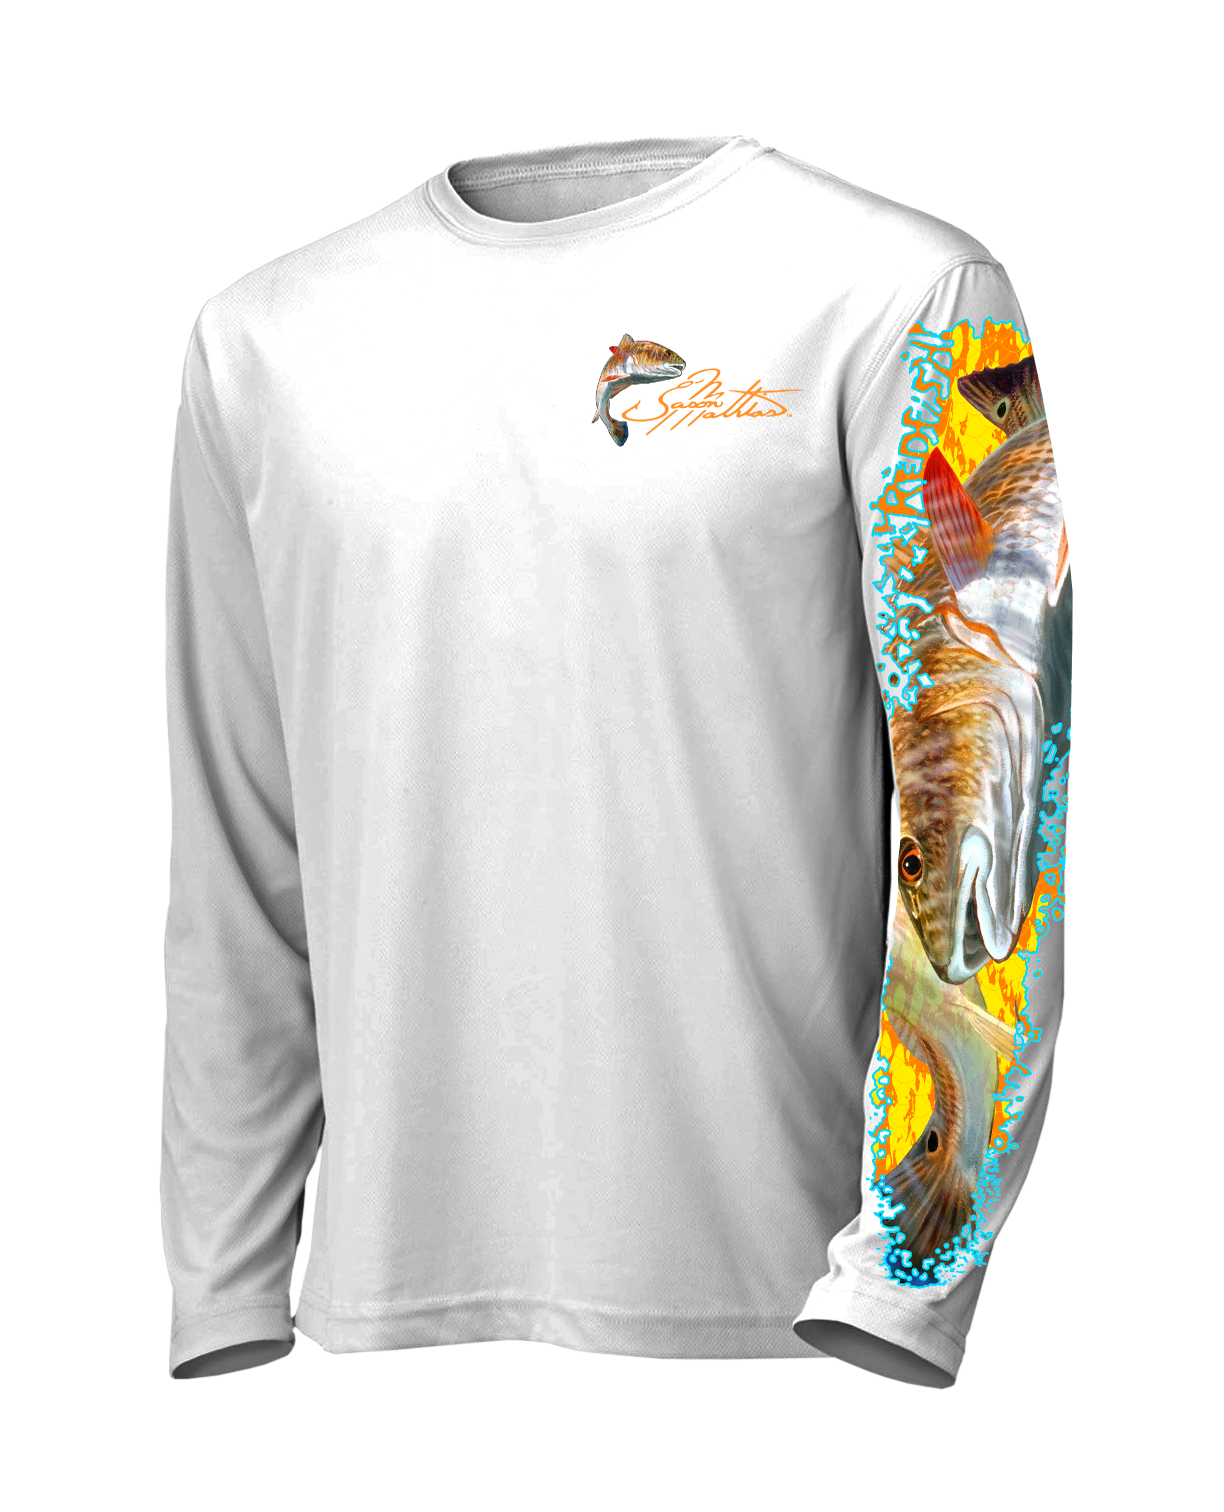 redfish-shirt-white-front-jason-mathias.png